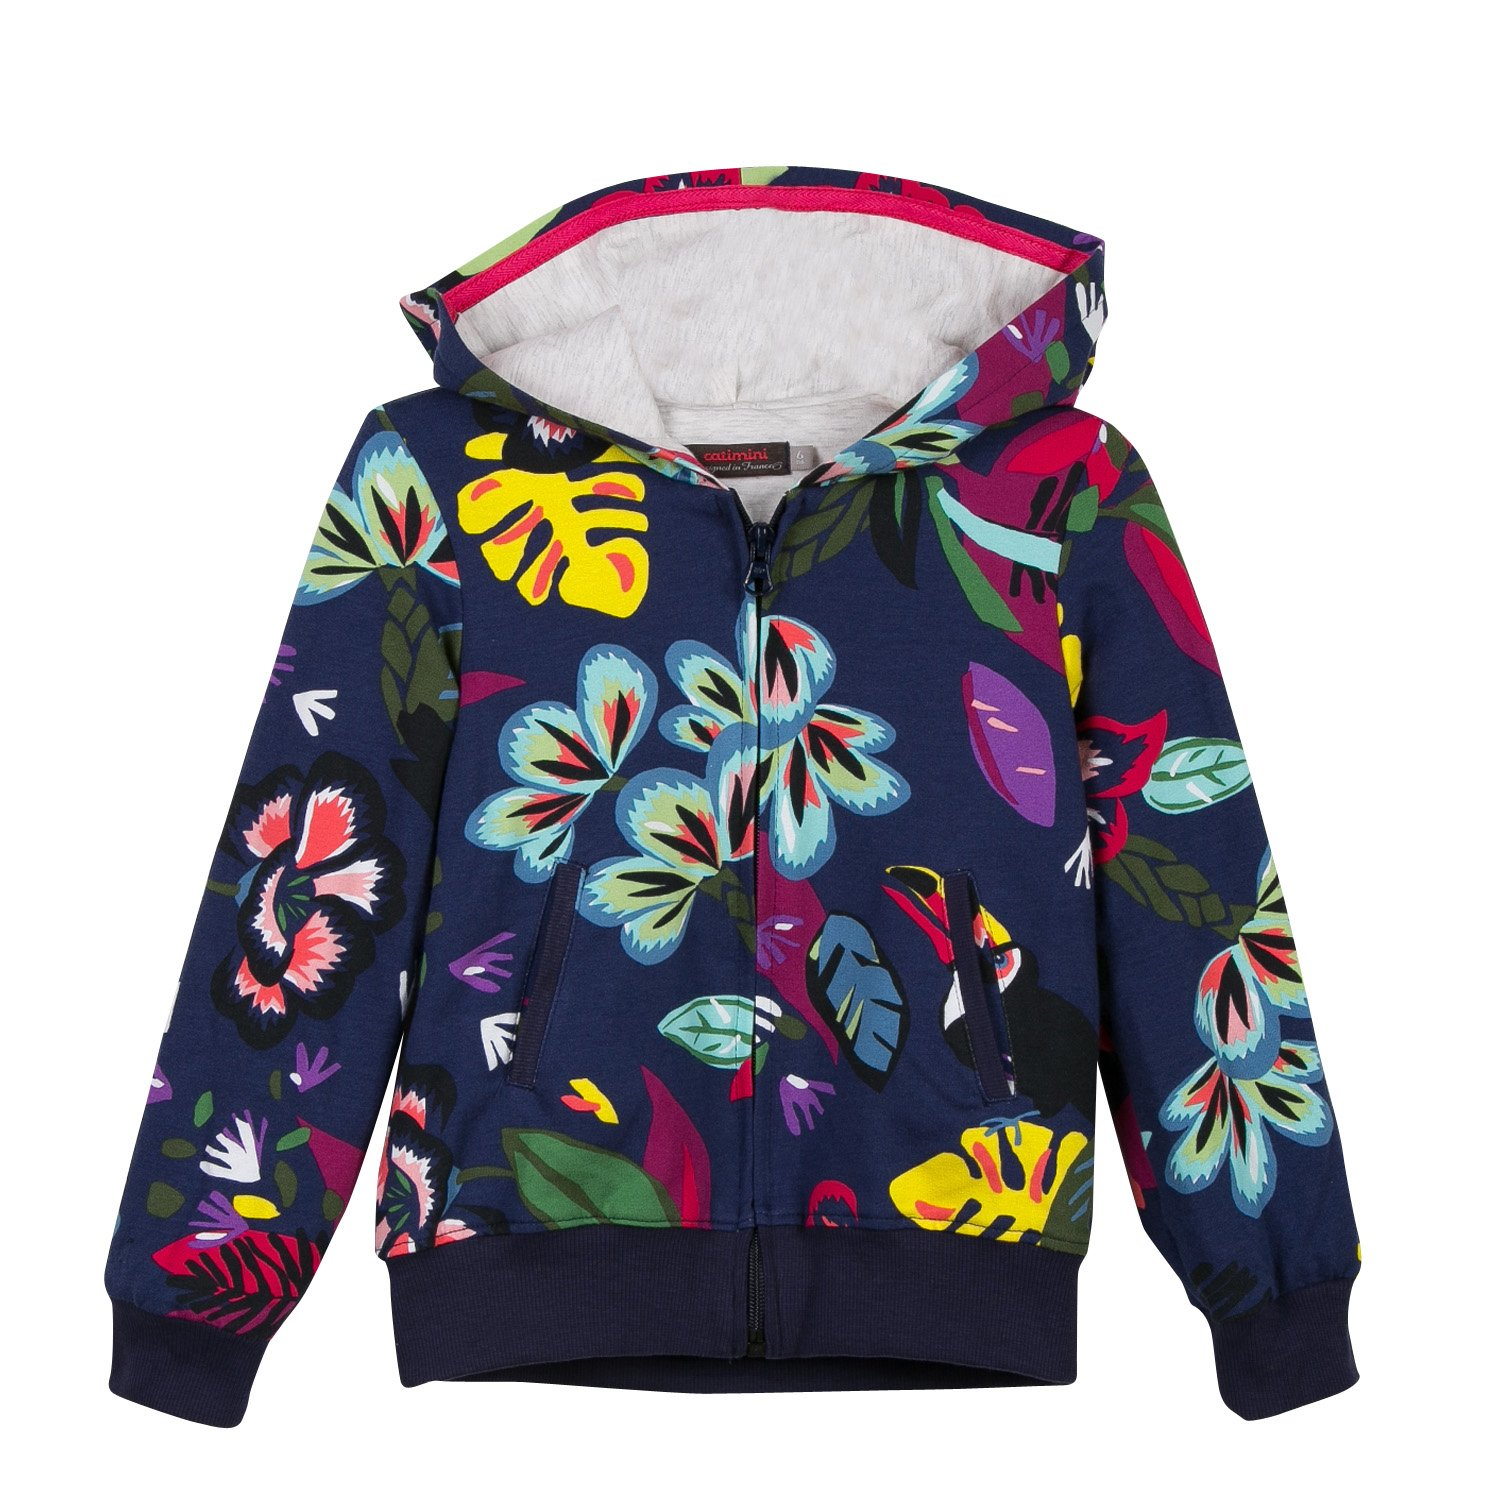 Catimini Girl's Cardi Molleton Cardigan Multicolour (Imprimé 88) 4 Years (Size: 4A) CL17035